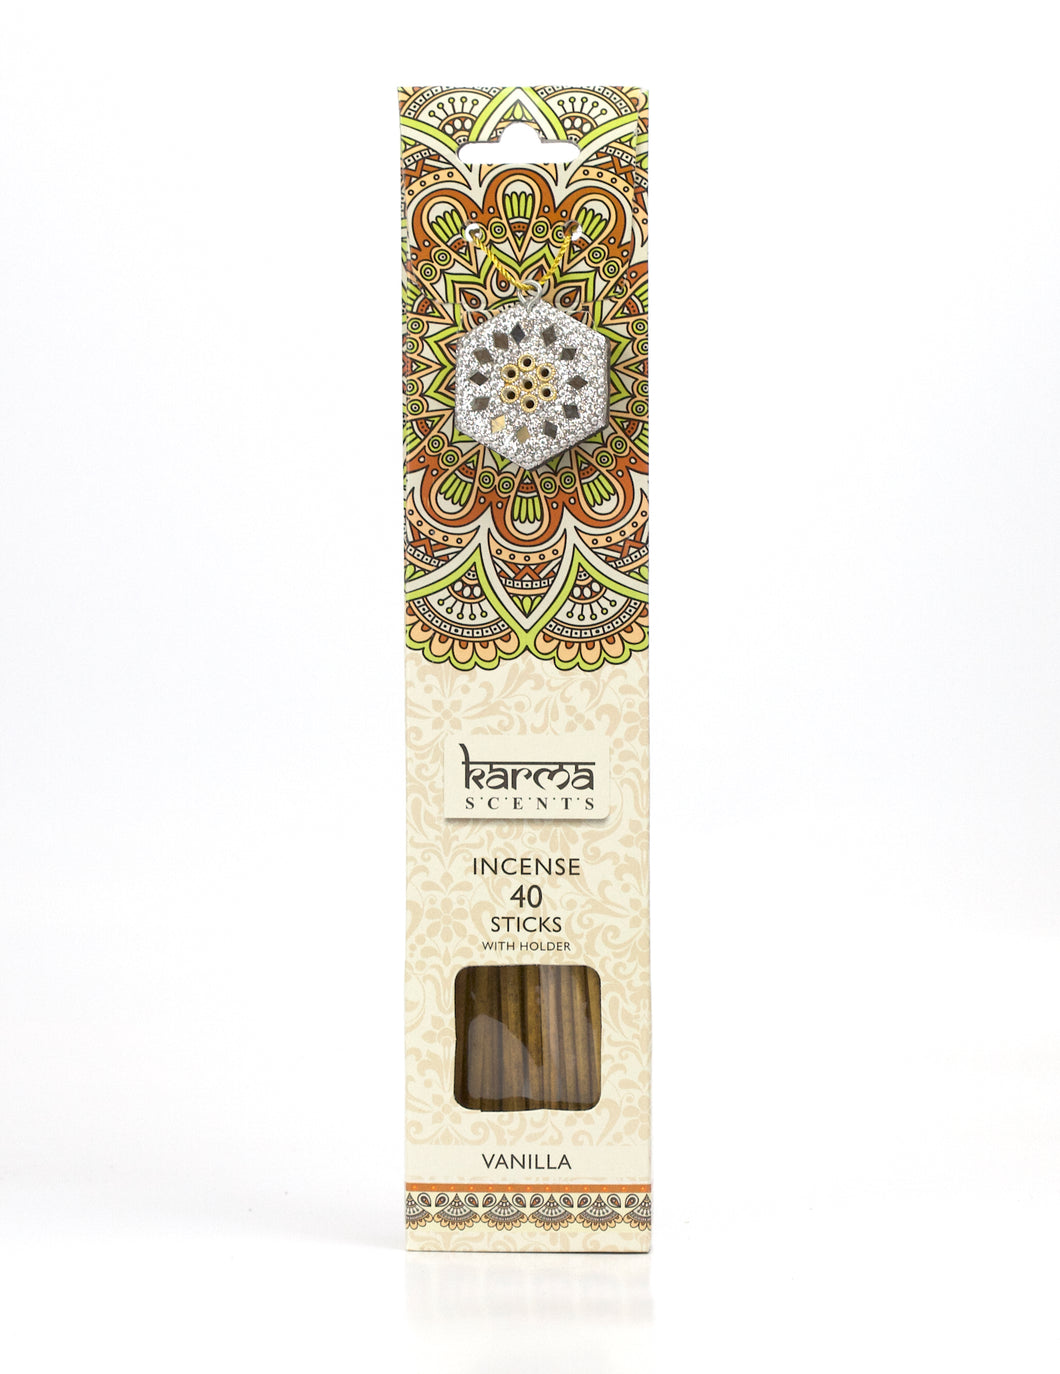 Vanilla Karma Incence Sticks and Holder Pack of 40